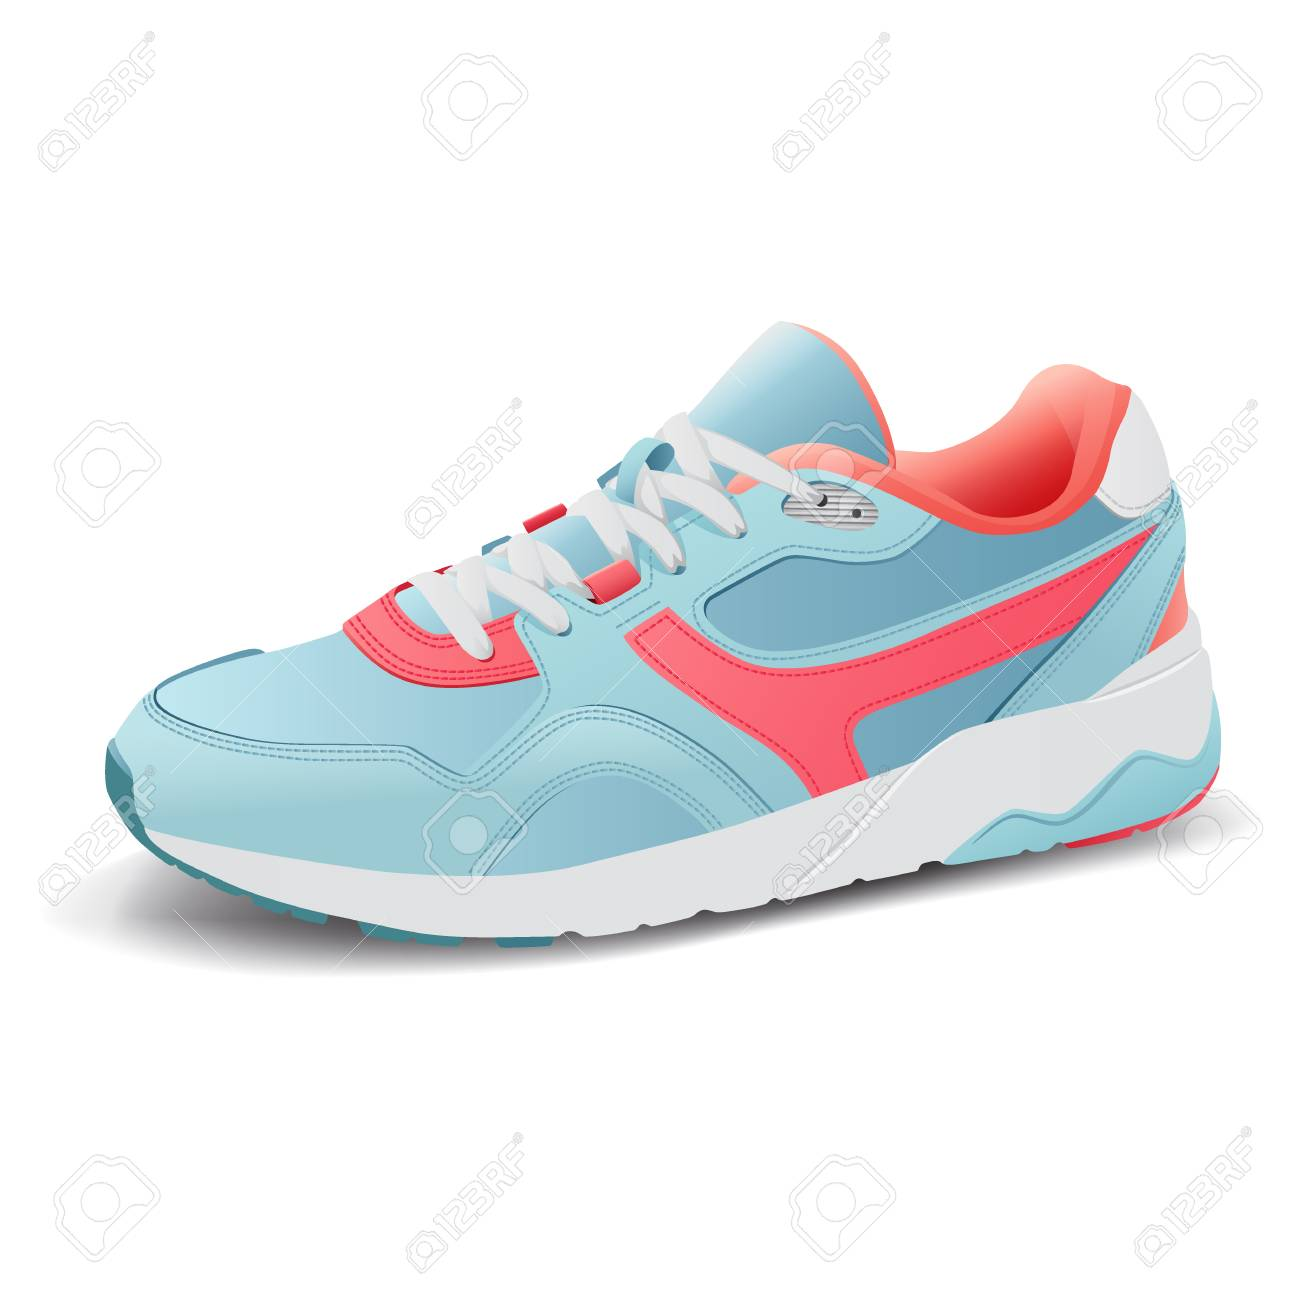 Realistic sport running shoe for training and fitness on white background, trendy sneakers, vector illustration - 126636899